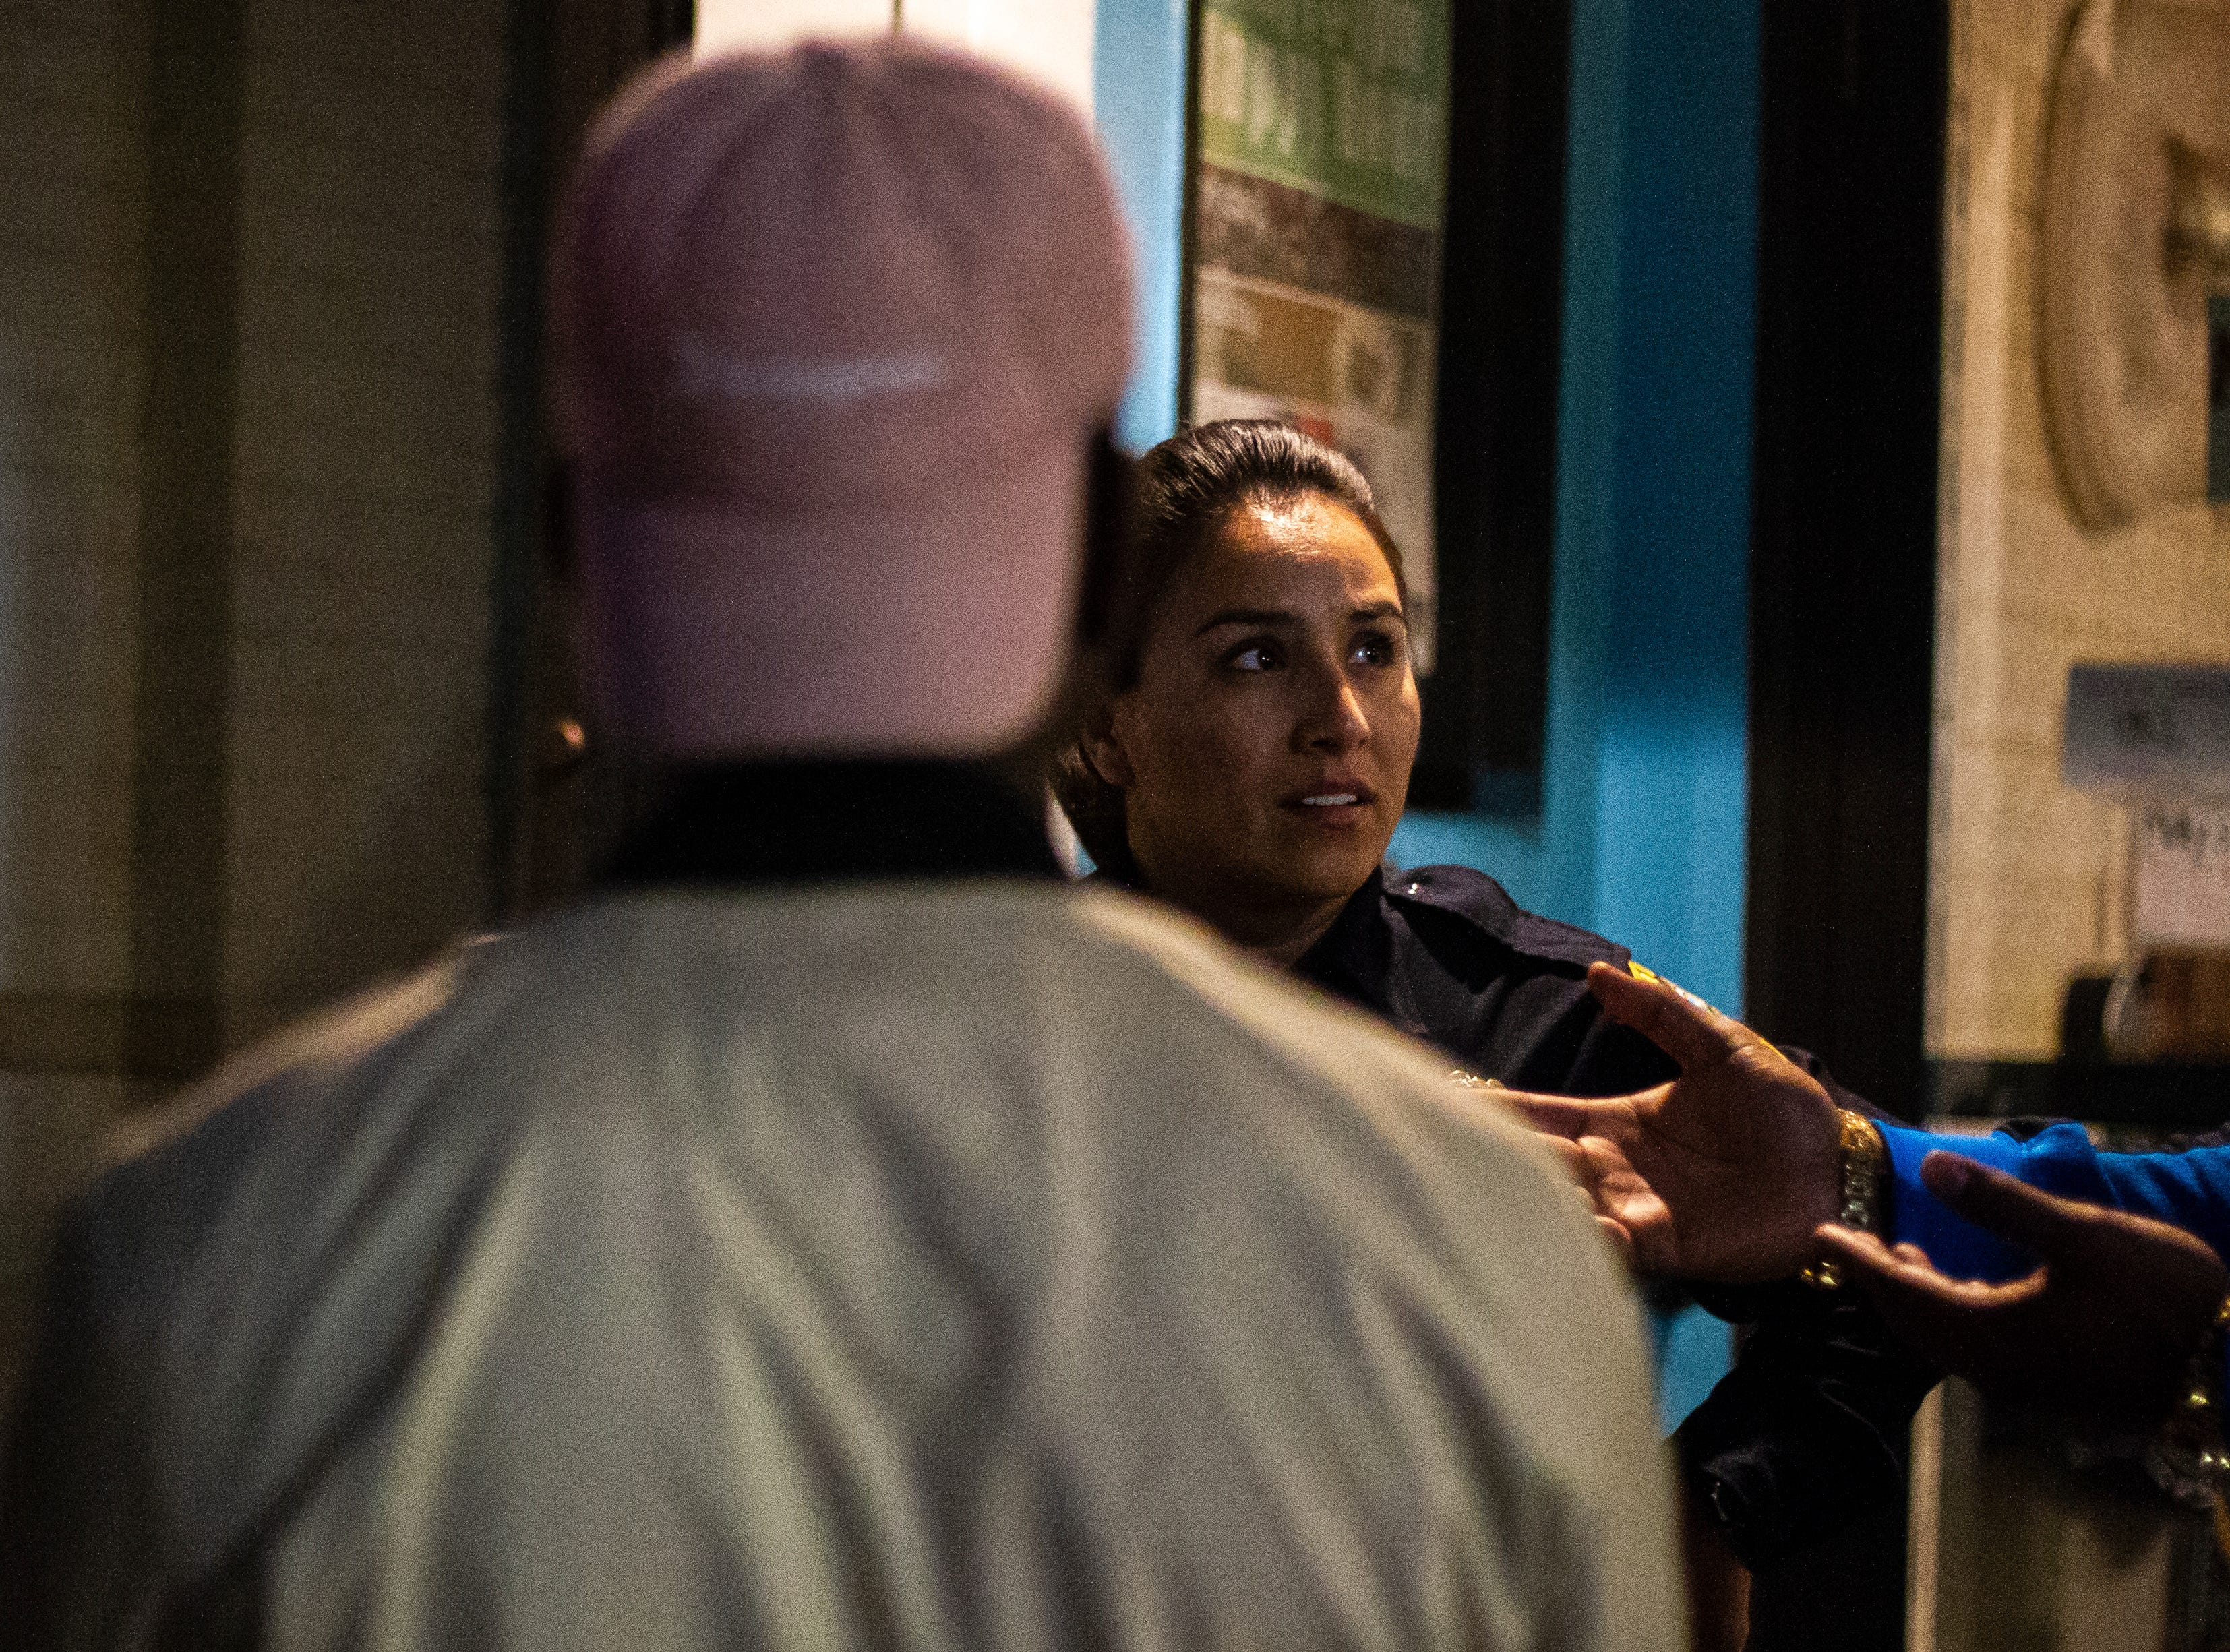 Iowa City Police Patrol Officer Pamela Romero talks with patrons outside a bar on Thursday morning, Nov. 1, 2018, in downtown Iowa City.